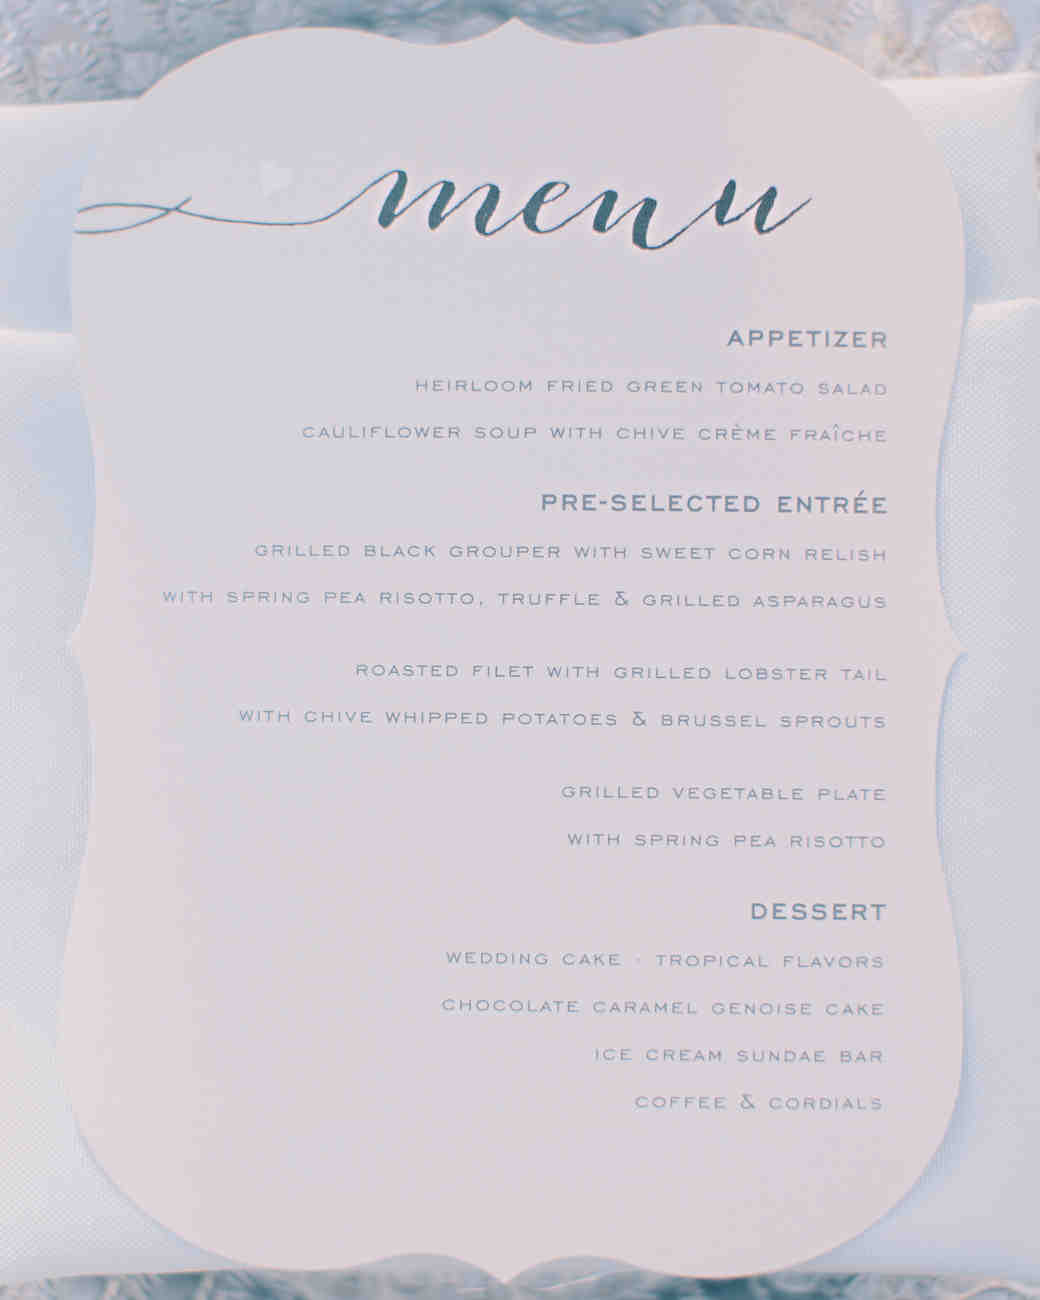 teresa-amanda-wedding-menu-0046-s111694-1114.jpg